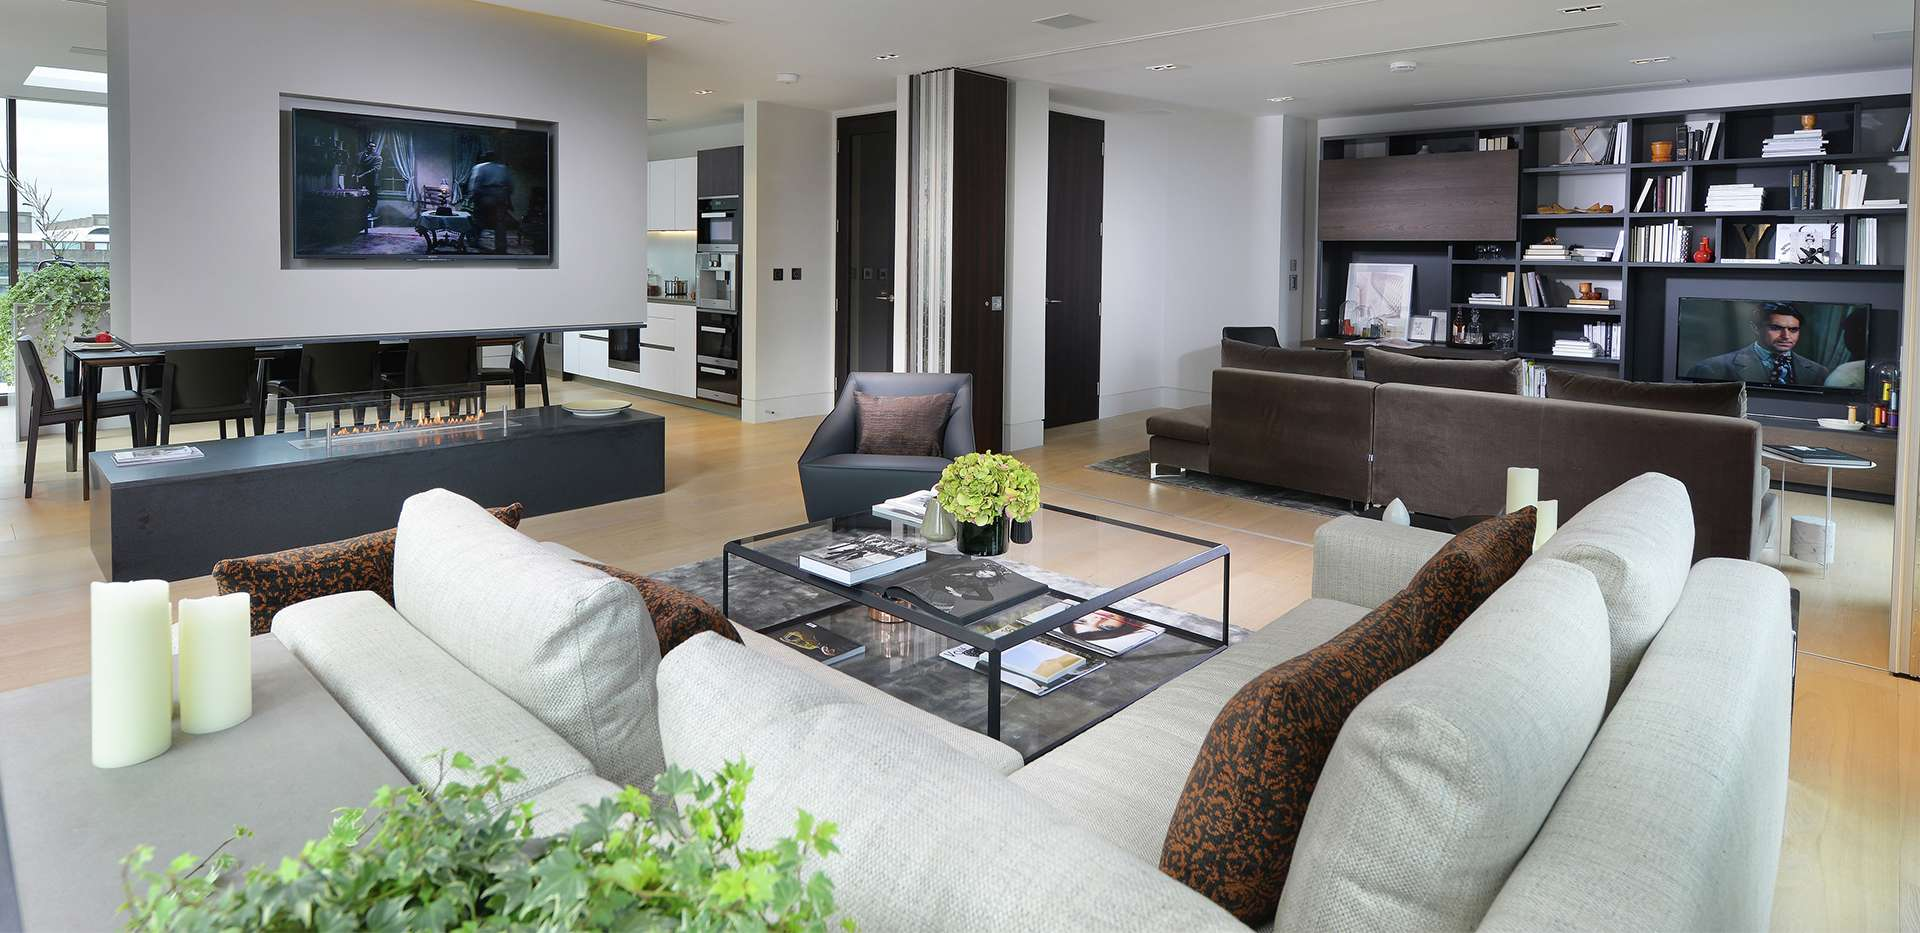 living space fitted with wood flooring